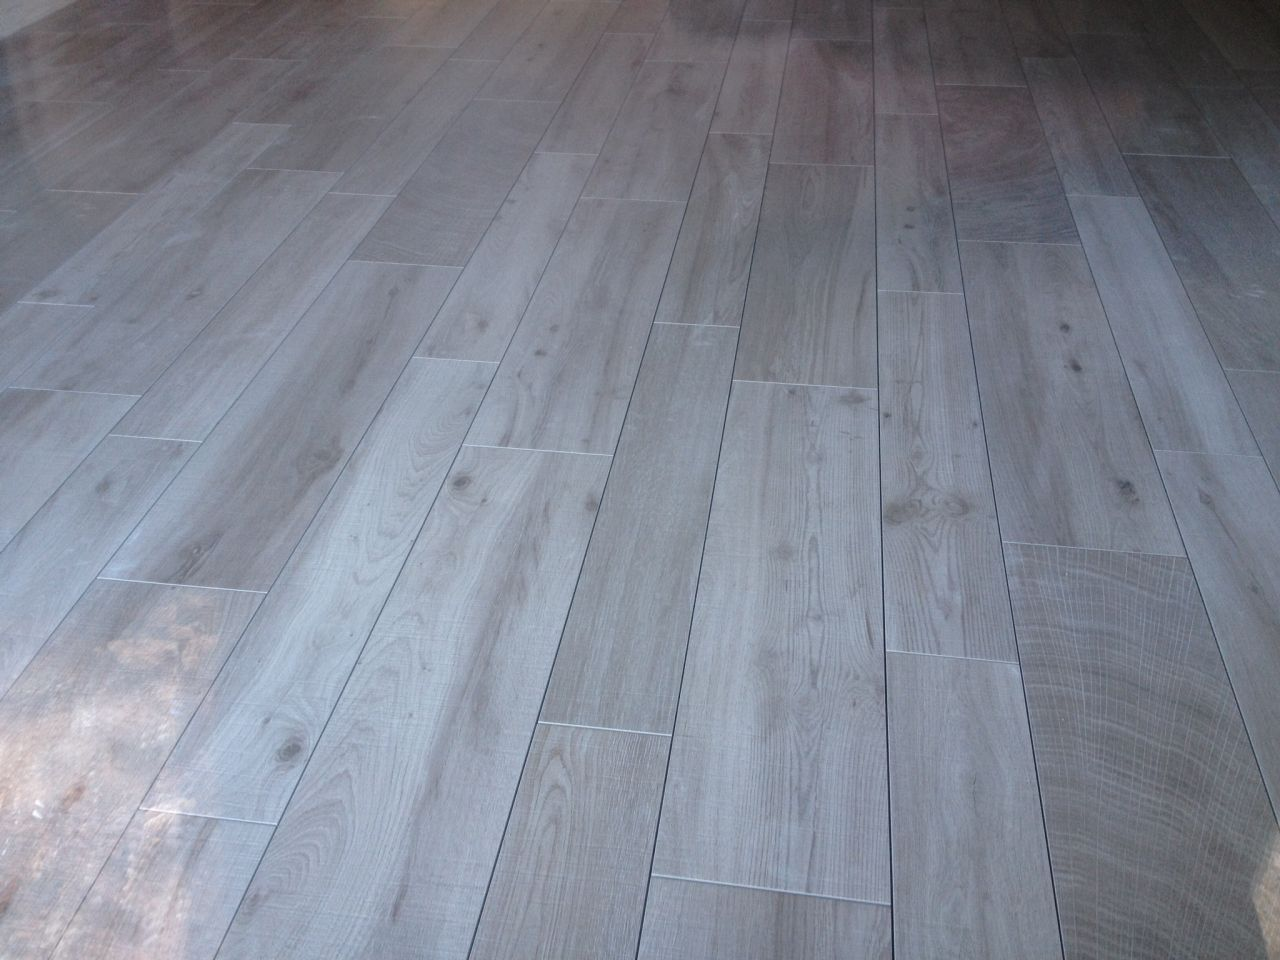 Porcelanosa carrelage imitation parquet for Porcelanosa carrelage exterieur imitation bois